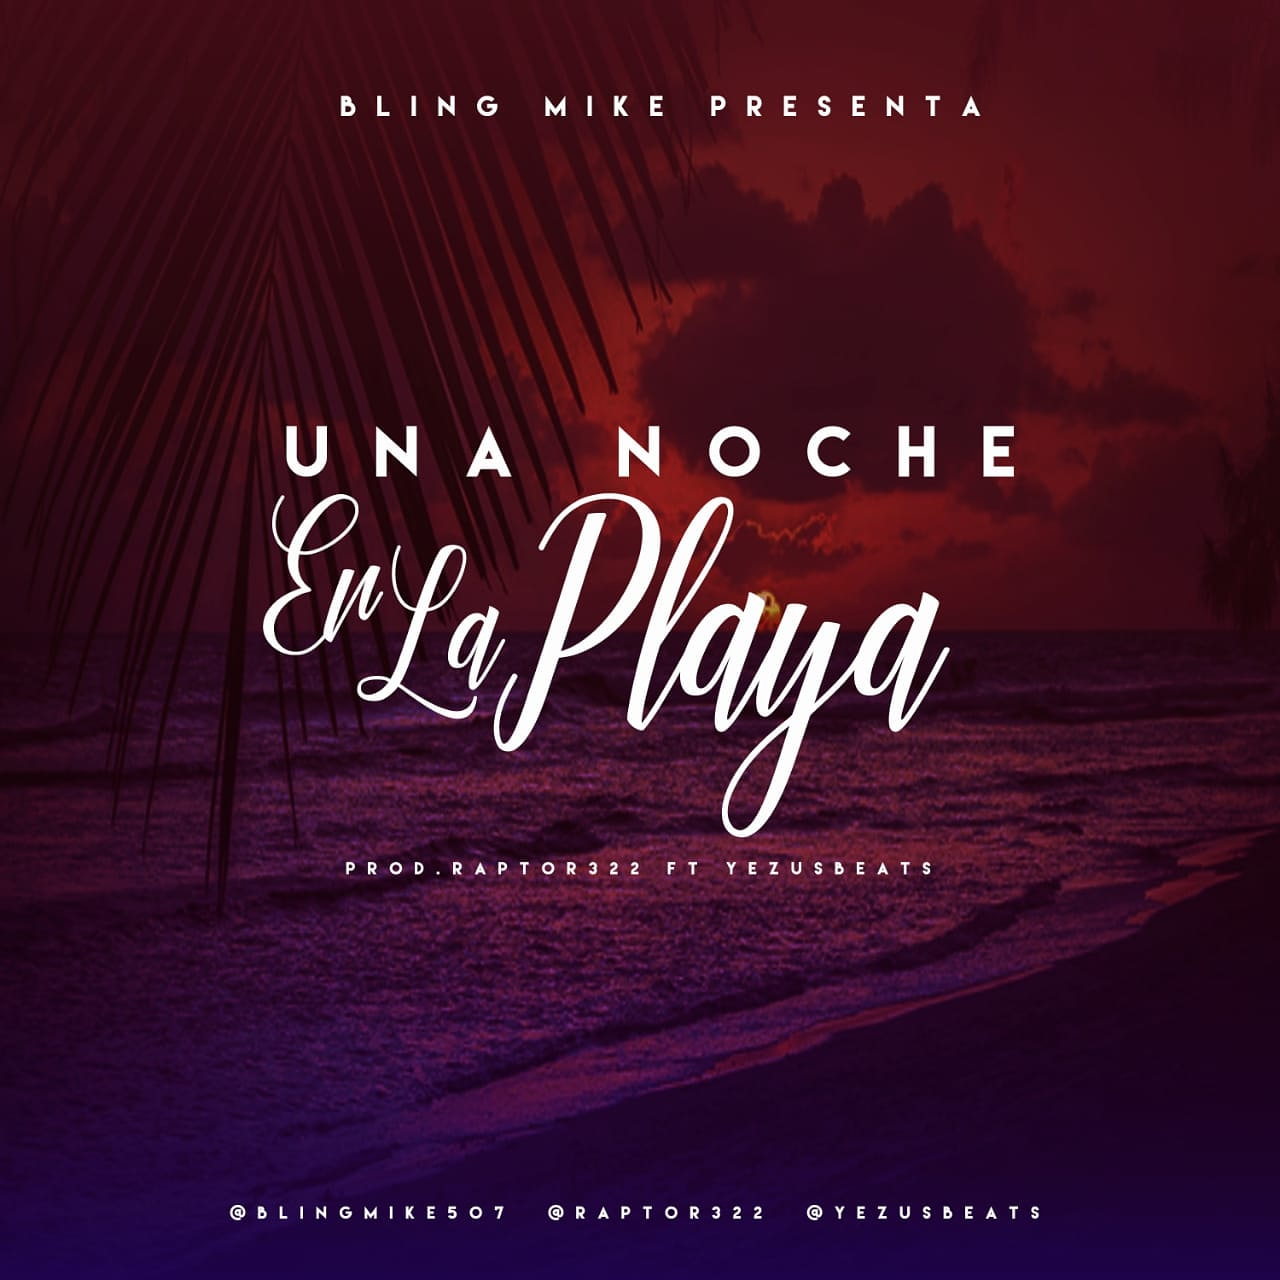 Bling Mike - Una Noche En La Playa